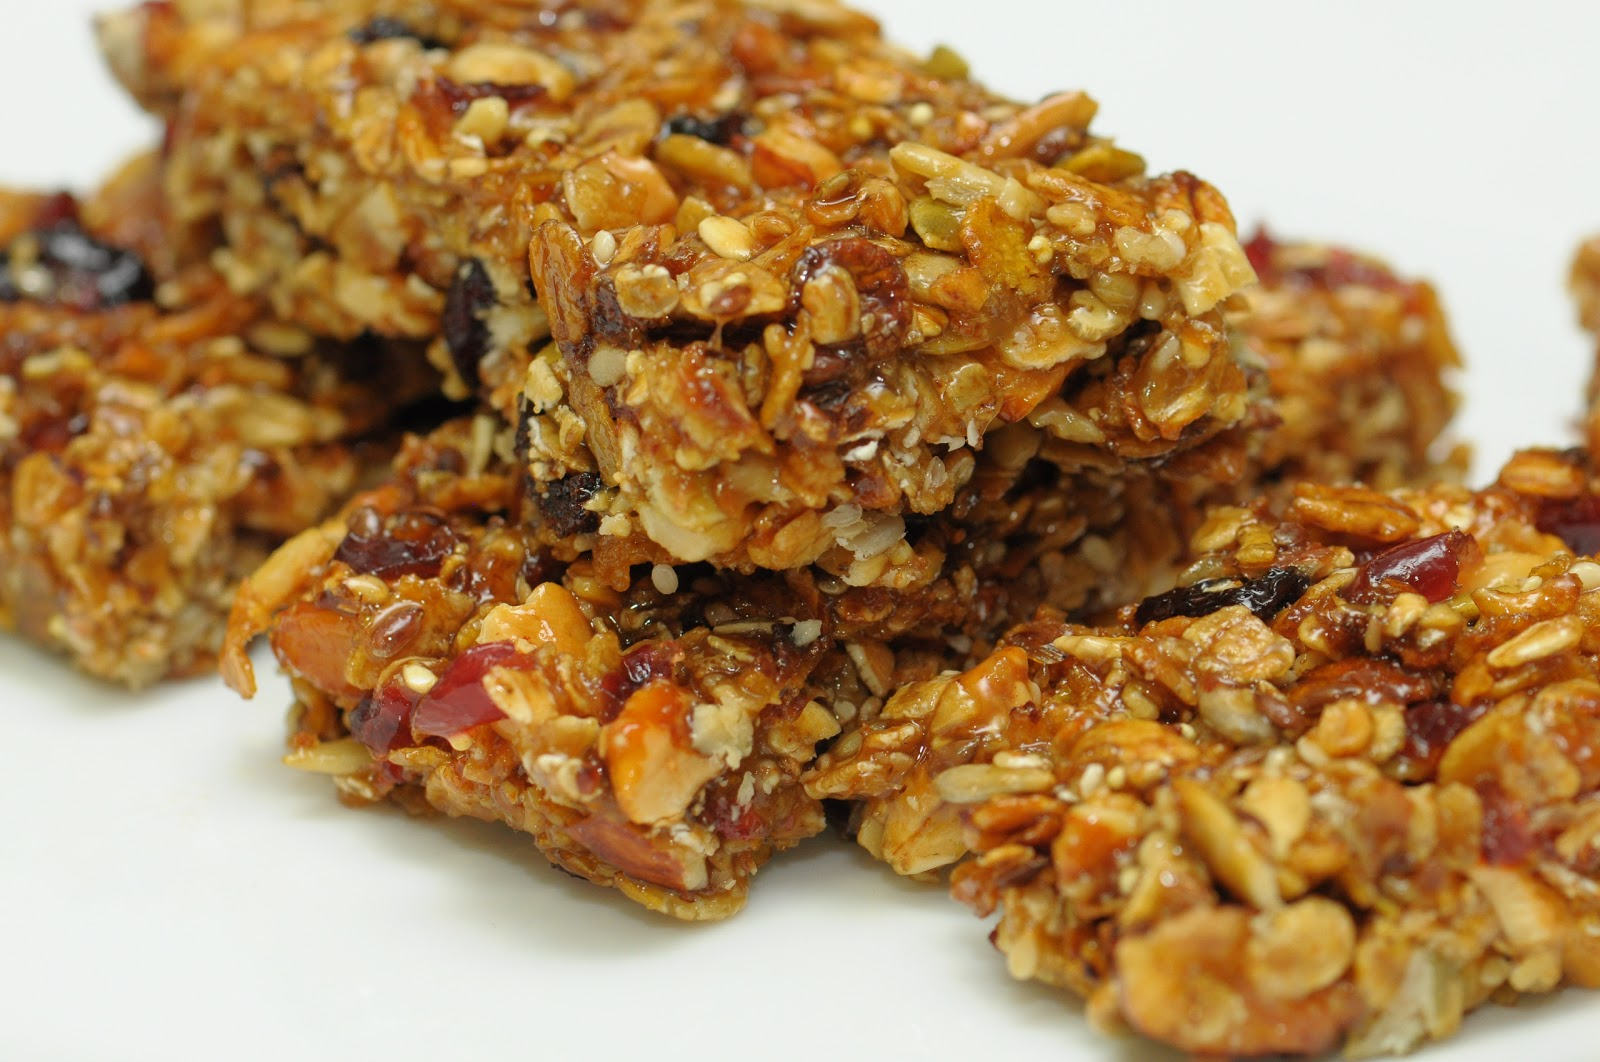 Scrappingcrazy homemade granola bars